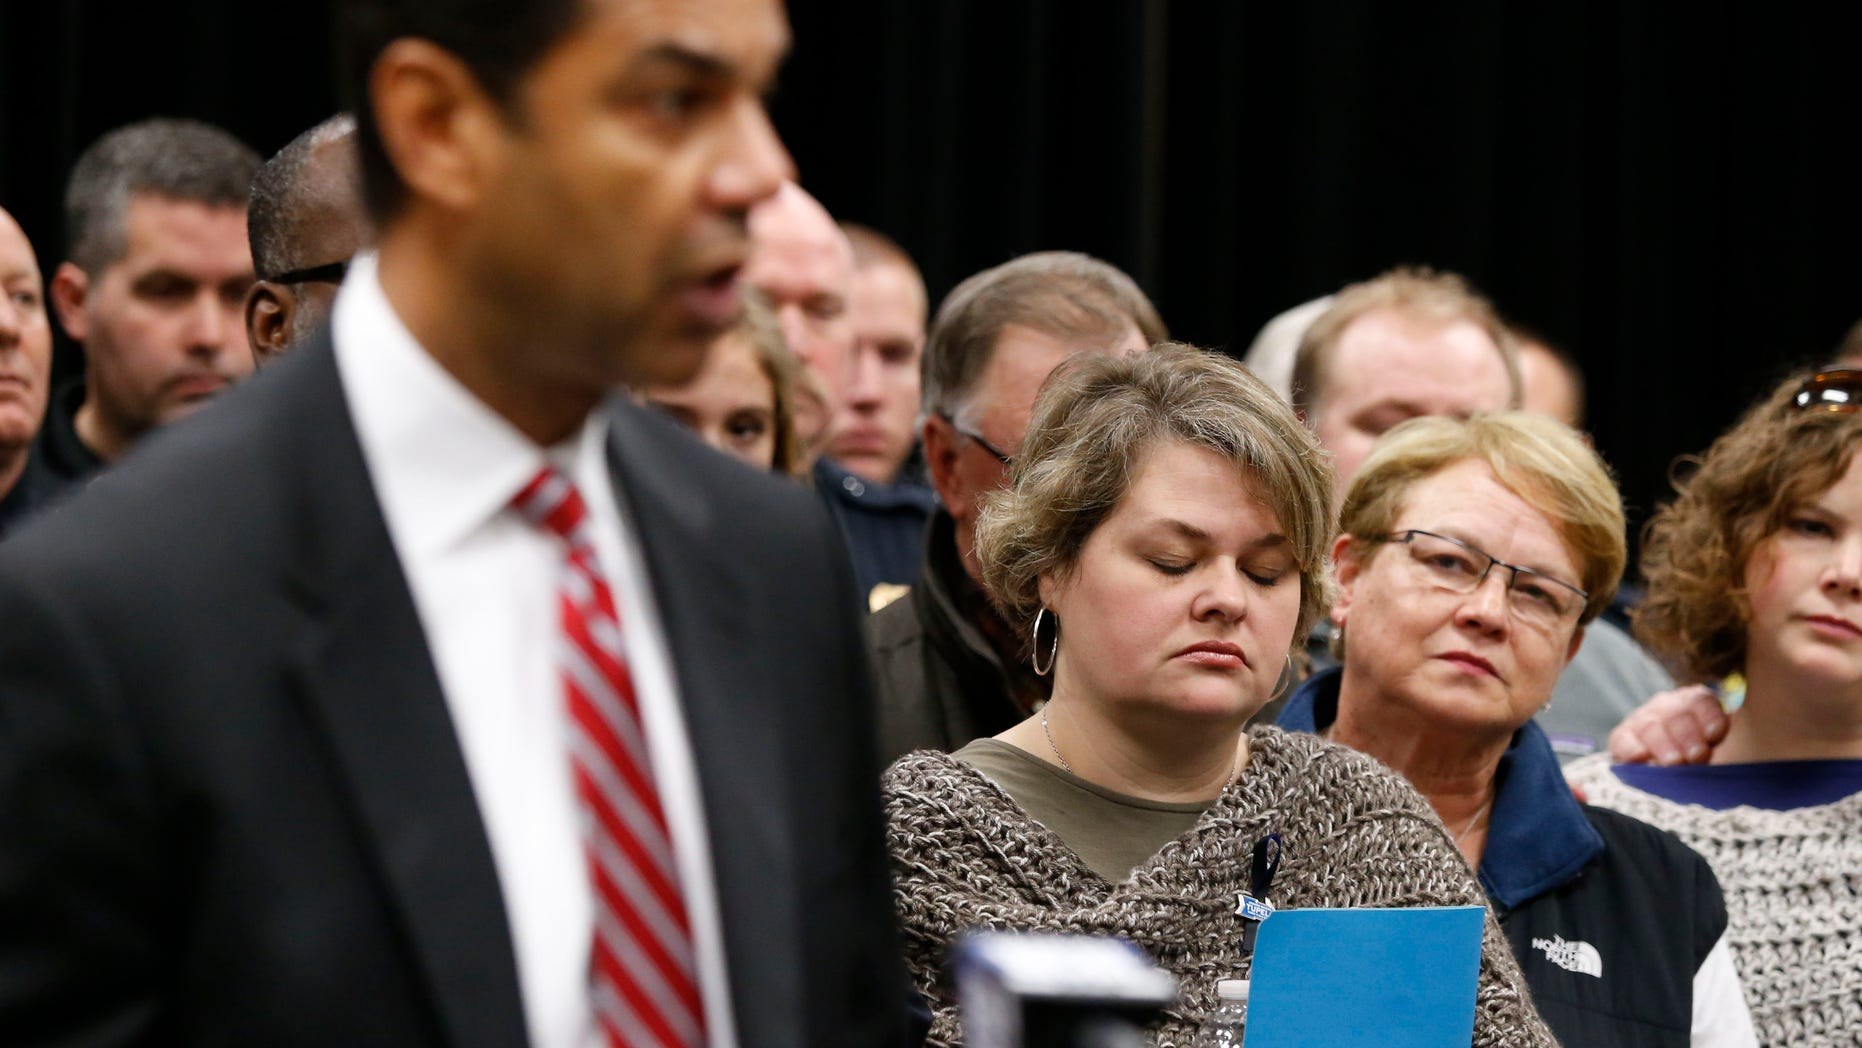 Beth Stauffer, center, reacts on Sunday, Dec. 29, 2013,  as FBI Special Agent in Charge Danile McMullen announces they believe the bank robber who killed her husband, Sgt. Gale Stuaffer on Monday, was killed attempting another bank robbery in Phoniex, Ariz., on Saturday in Tupelo, Miss. (AP Photo/Northeast Mississippi Daily Journal, Thomas Wells) MANDATORY CREDIT